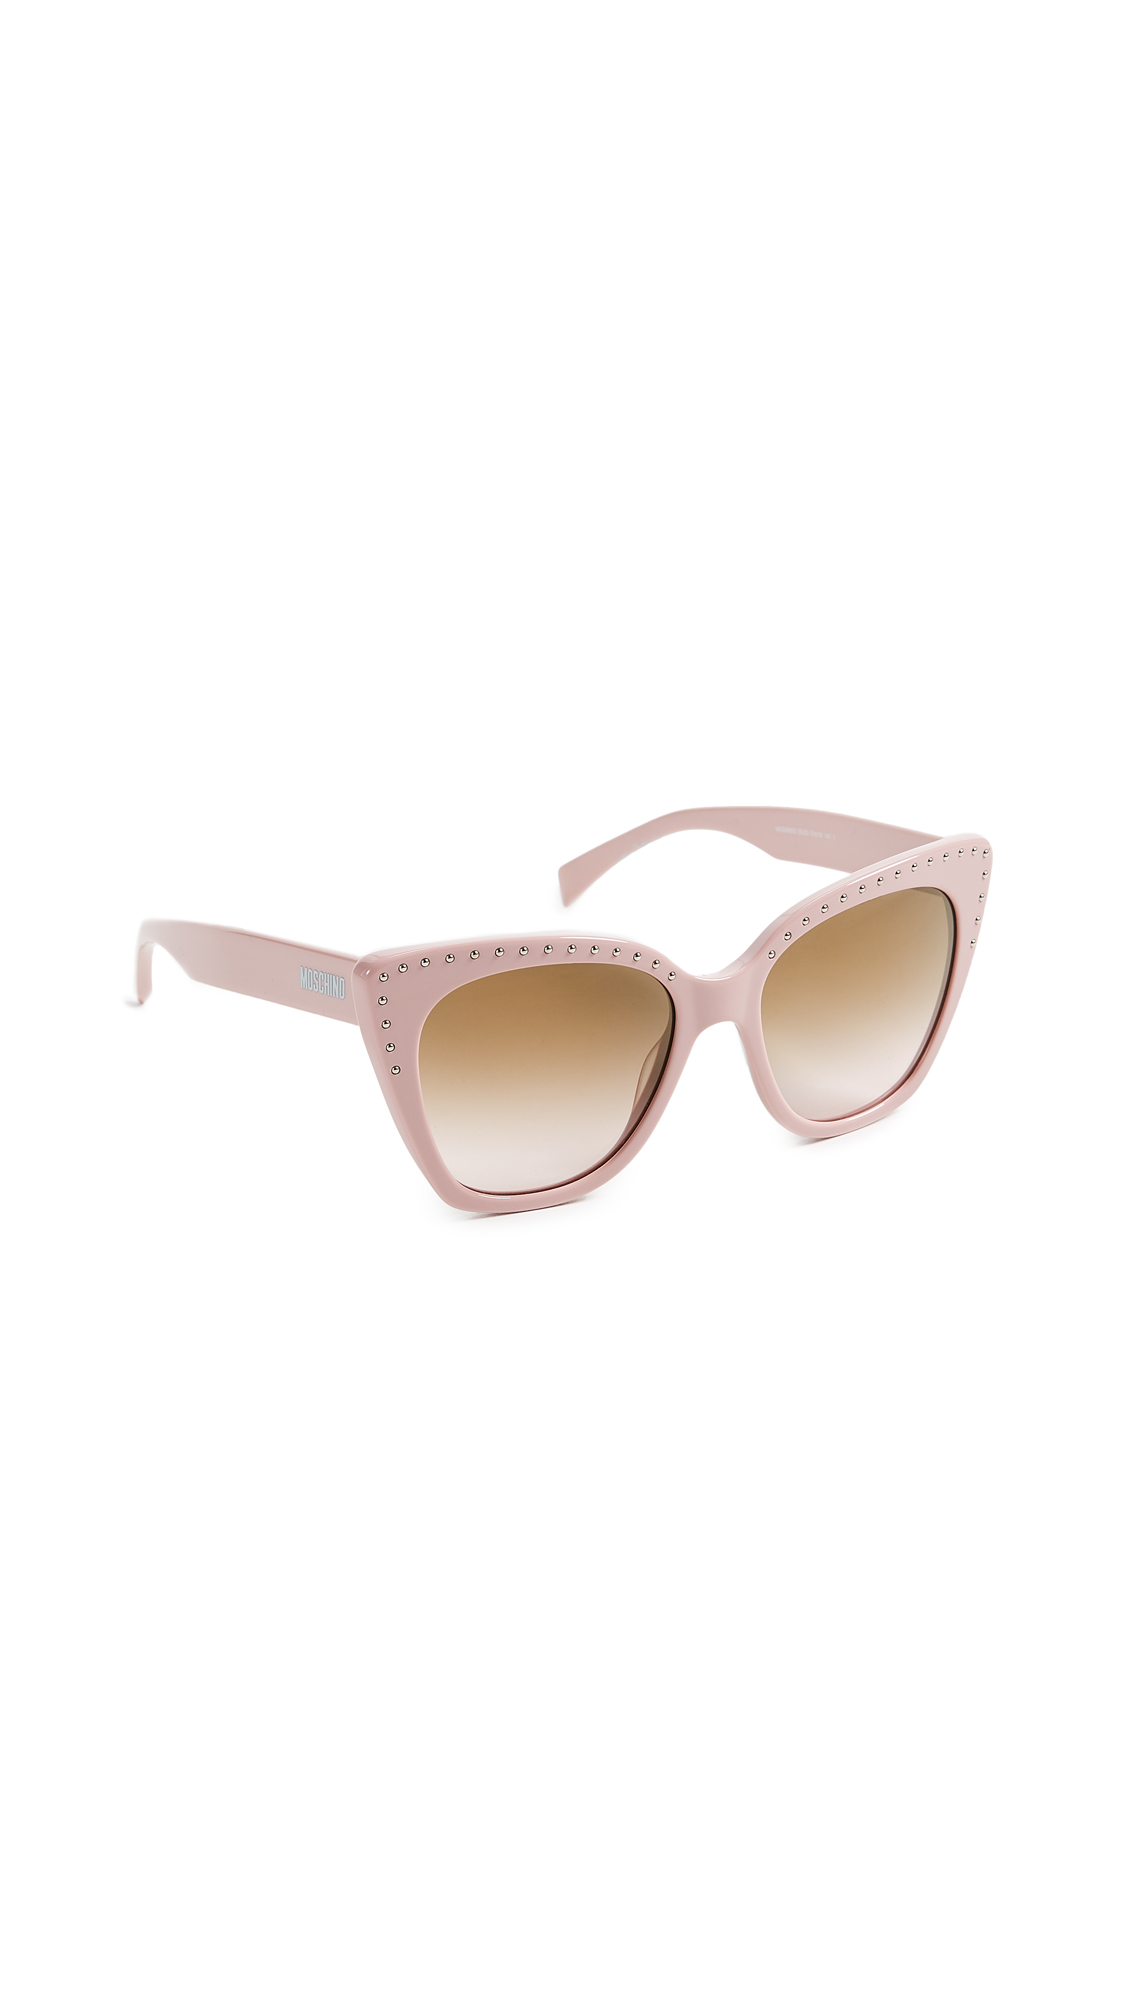 a8f379bd9f09 MOSCHINO SLIGHT CAT EYE SUNGLASSES